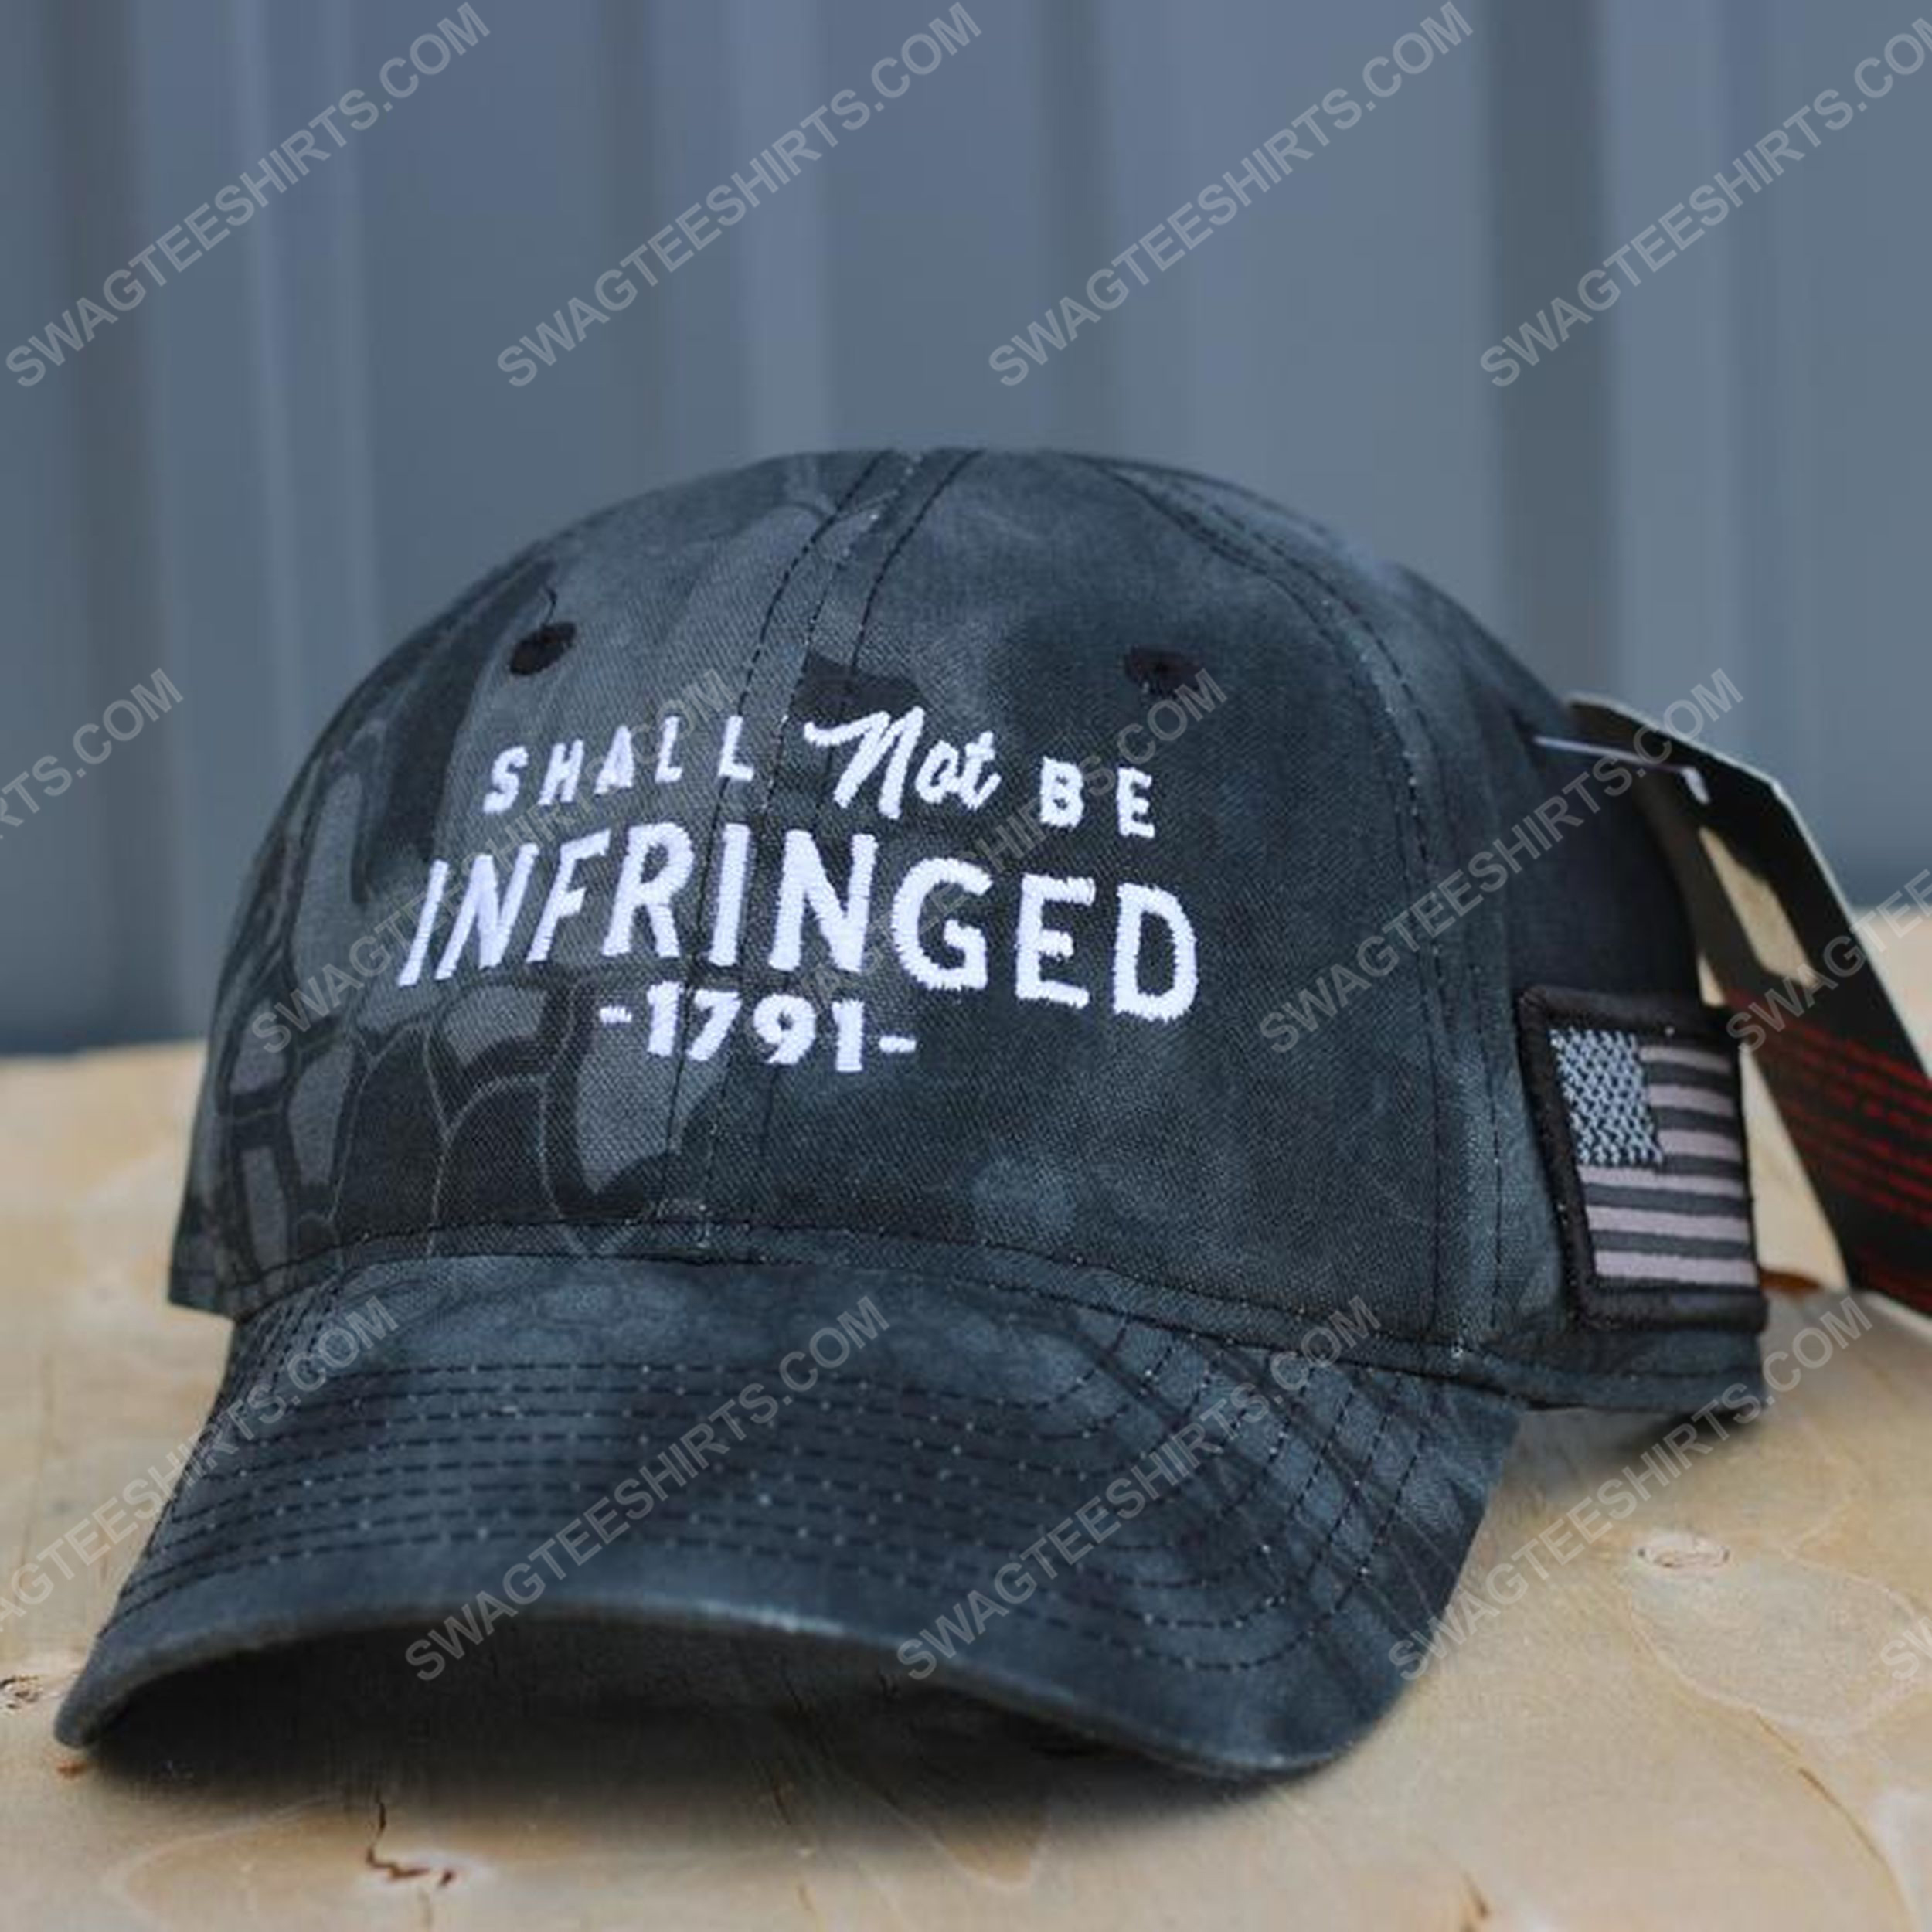 Shall not be infringed full print classic hat 1